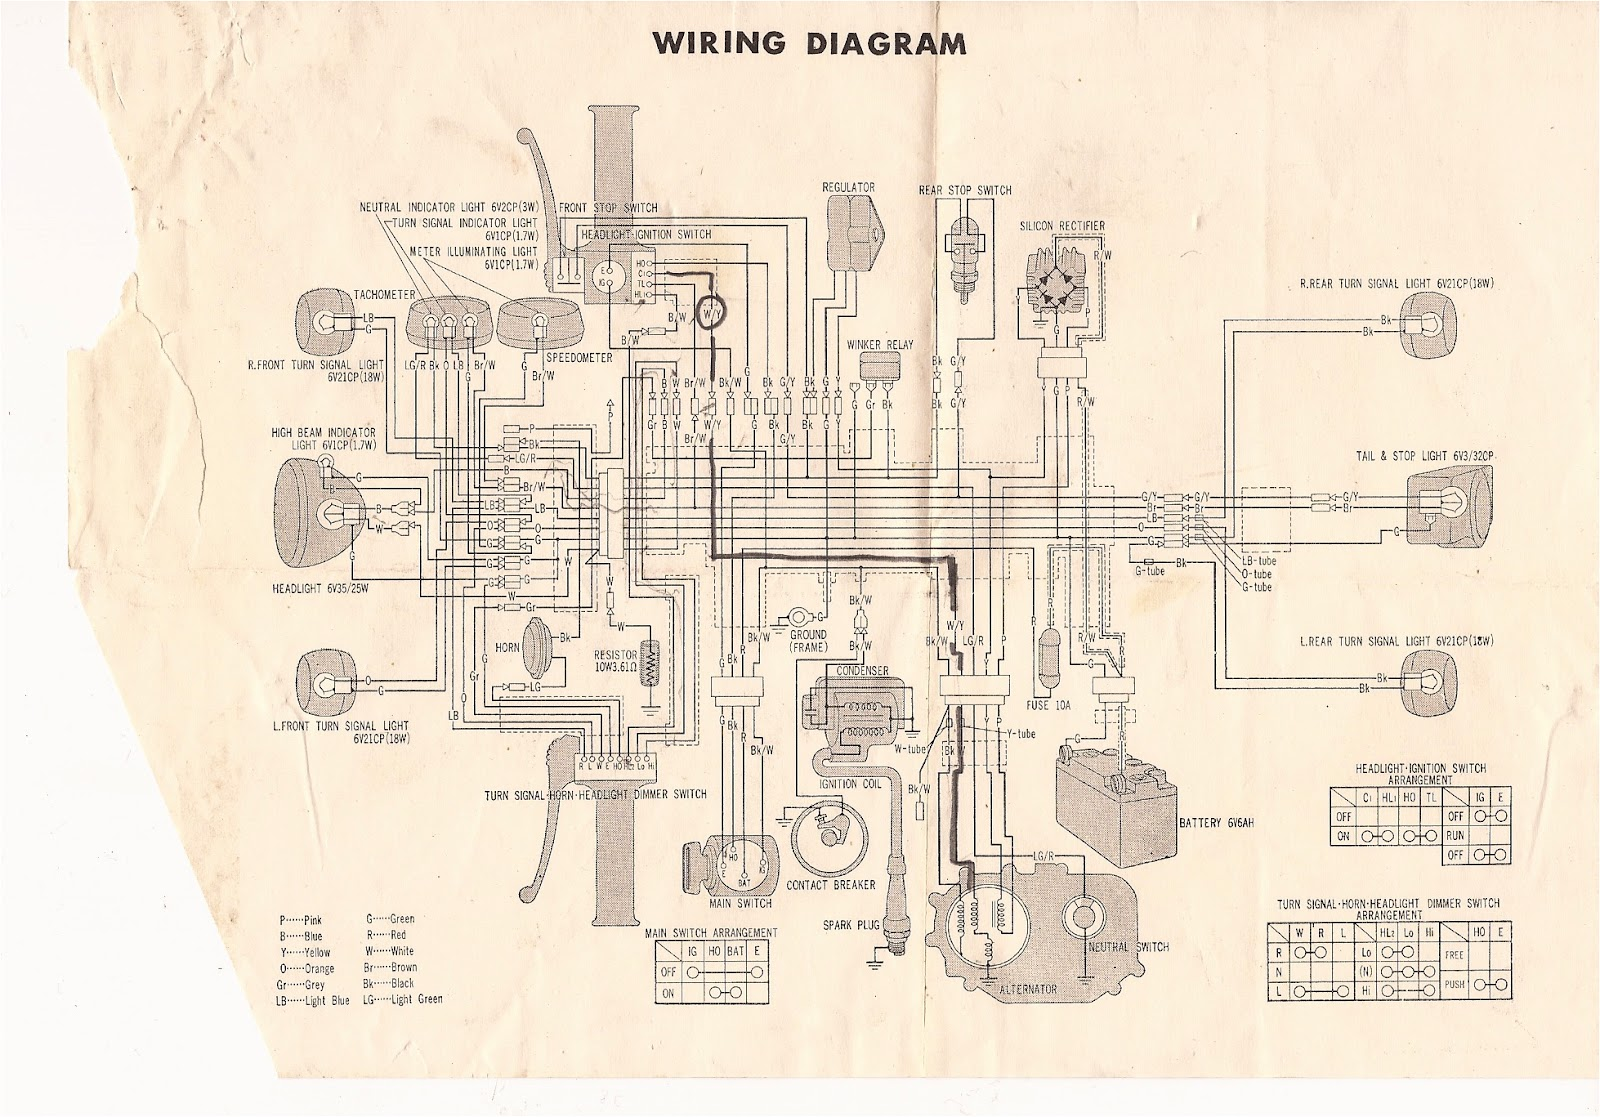 XL350+Wiring+diagram cb360 wiring diagram yamaha rd 350 wiring diagram \u2022 wiring honda cg 125 wiring diagram at alyssarenee.co